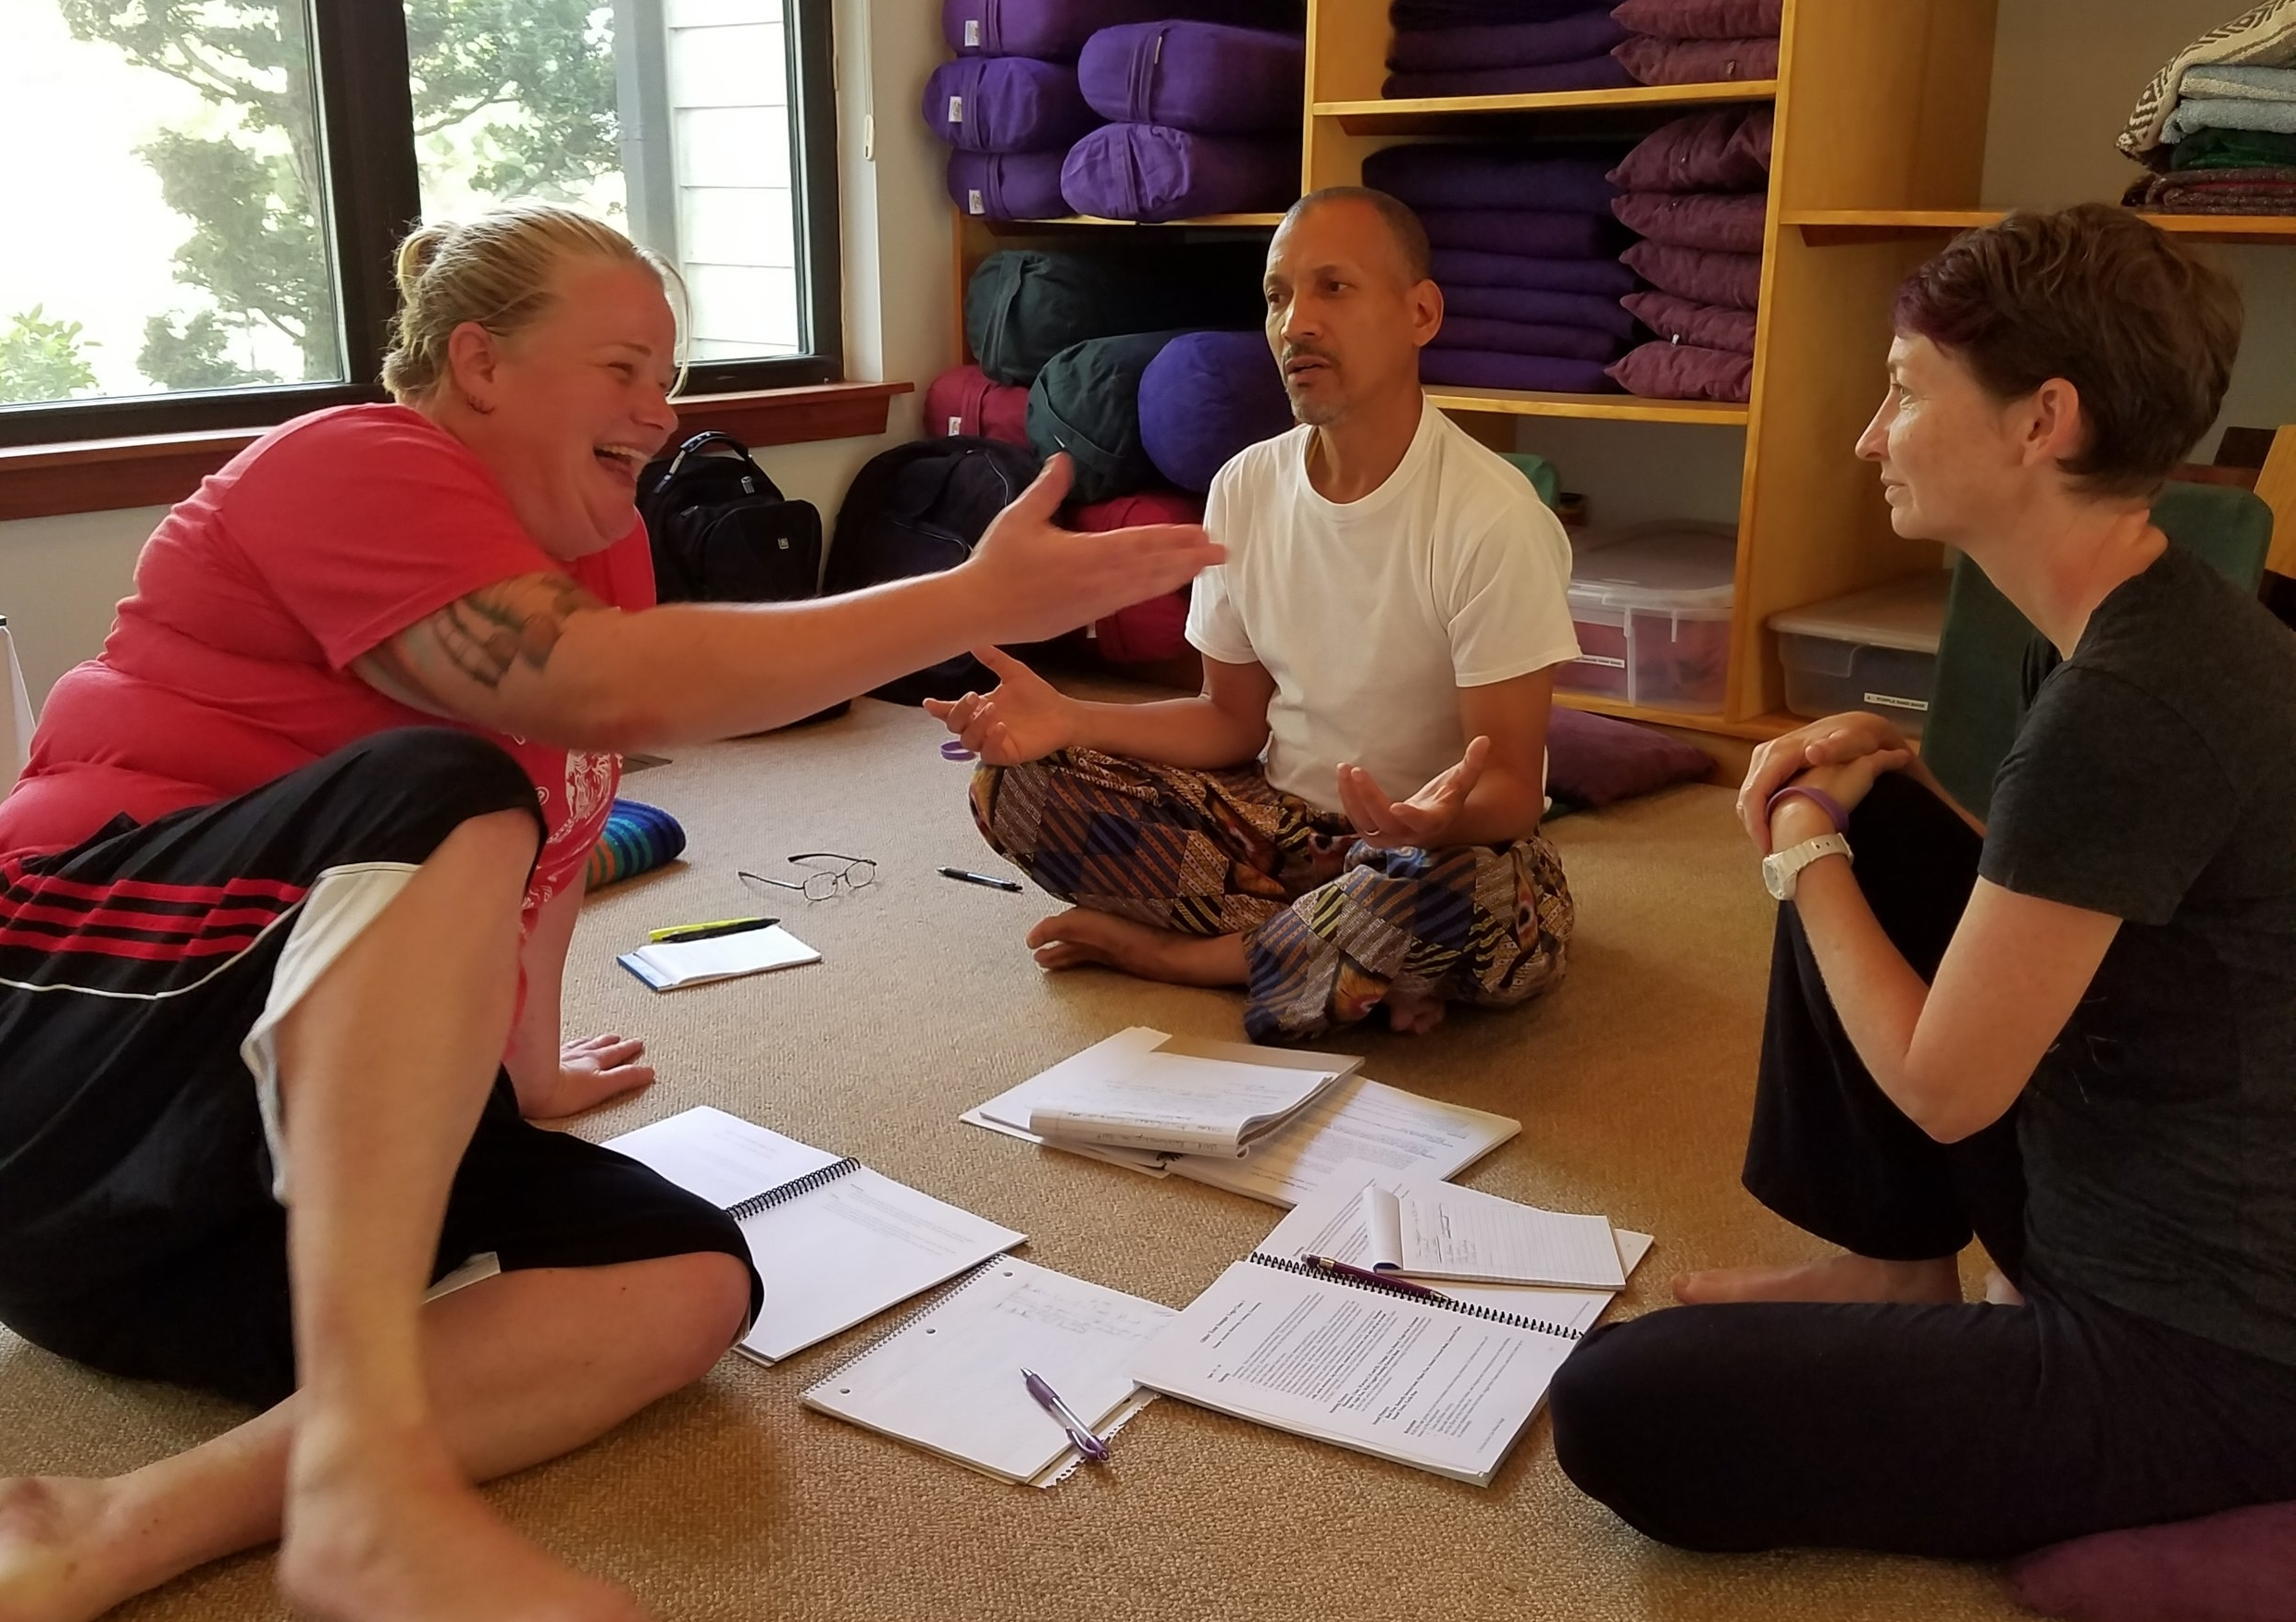 Yoga for Teens Teacher Training at Yogaville, VA in August 2017